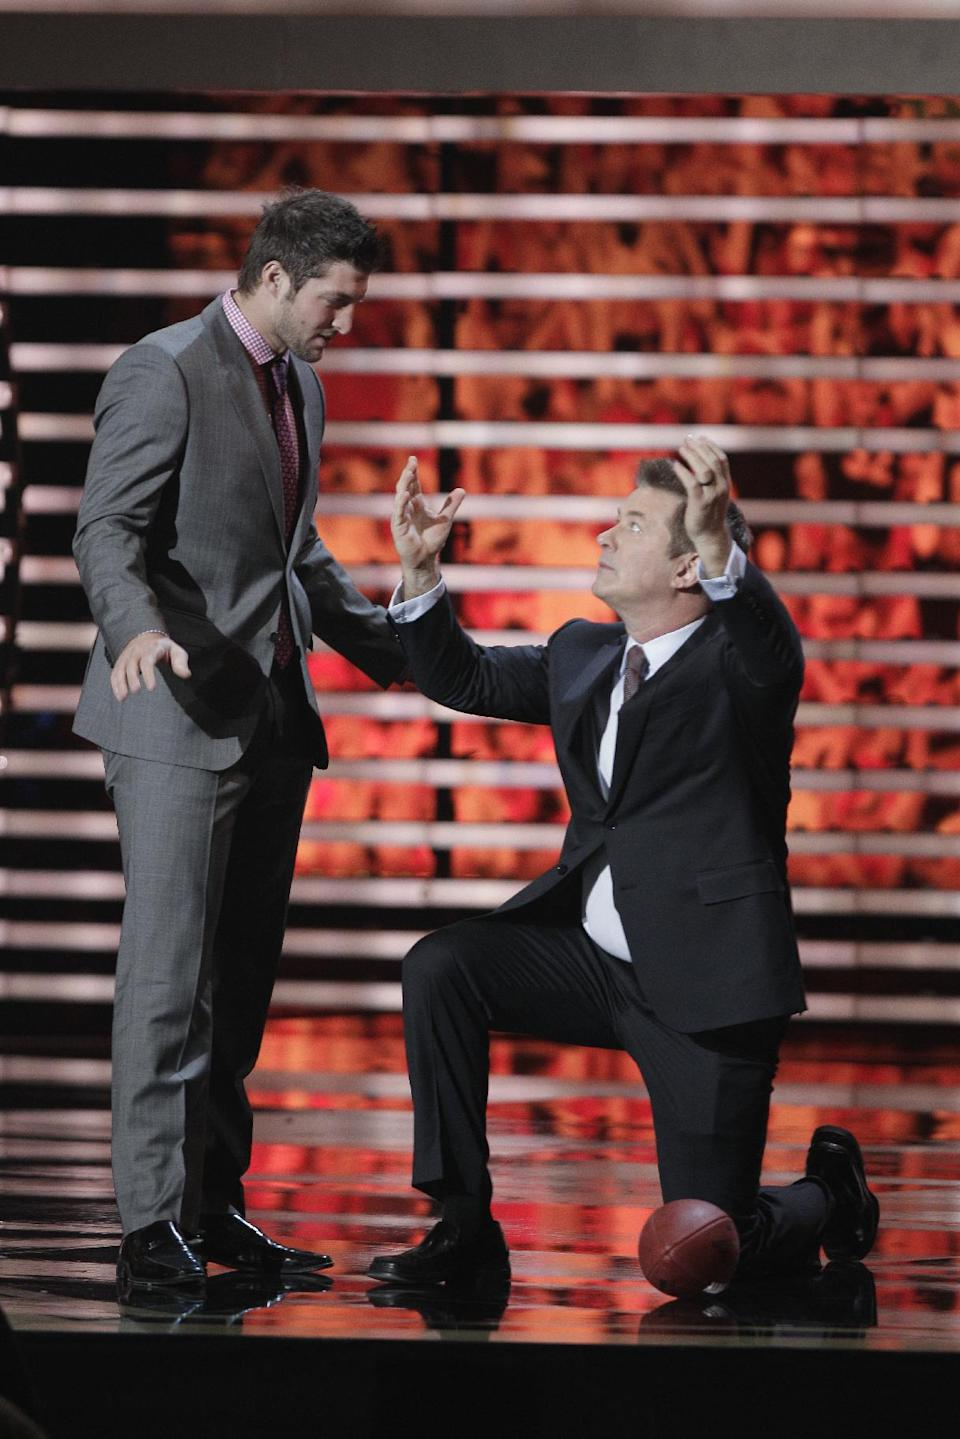 Denver Broncos' Tim Tebow corrects Alec Baldwin on his Tebowing form during the inaugural NFL Honors show Saturday, Feb. 4, 2012, in Indianapolis.The New York Giants will face the New England Patriots in the NFL football's Super Bowl XLVI in Indianapolis on Feb. 5. (AP Photo/Charlie Riedel)